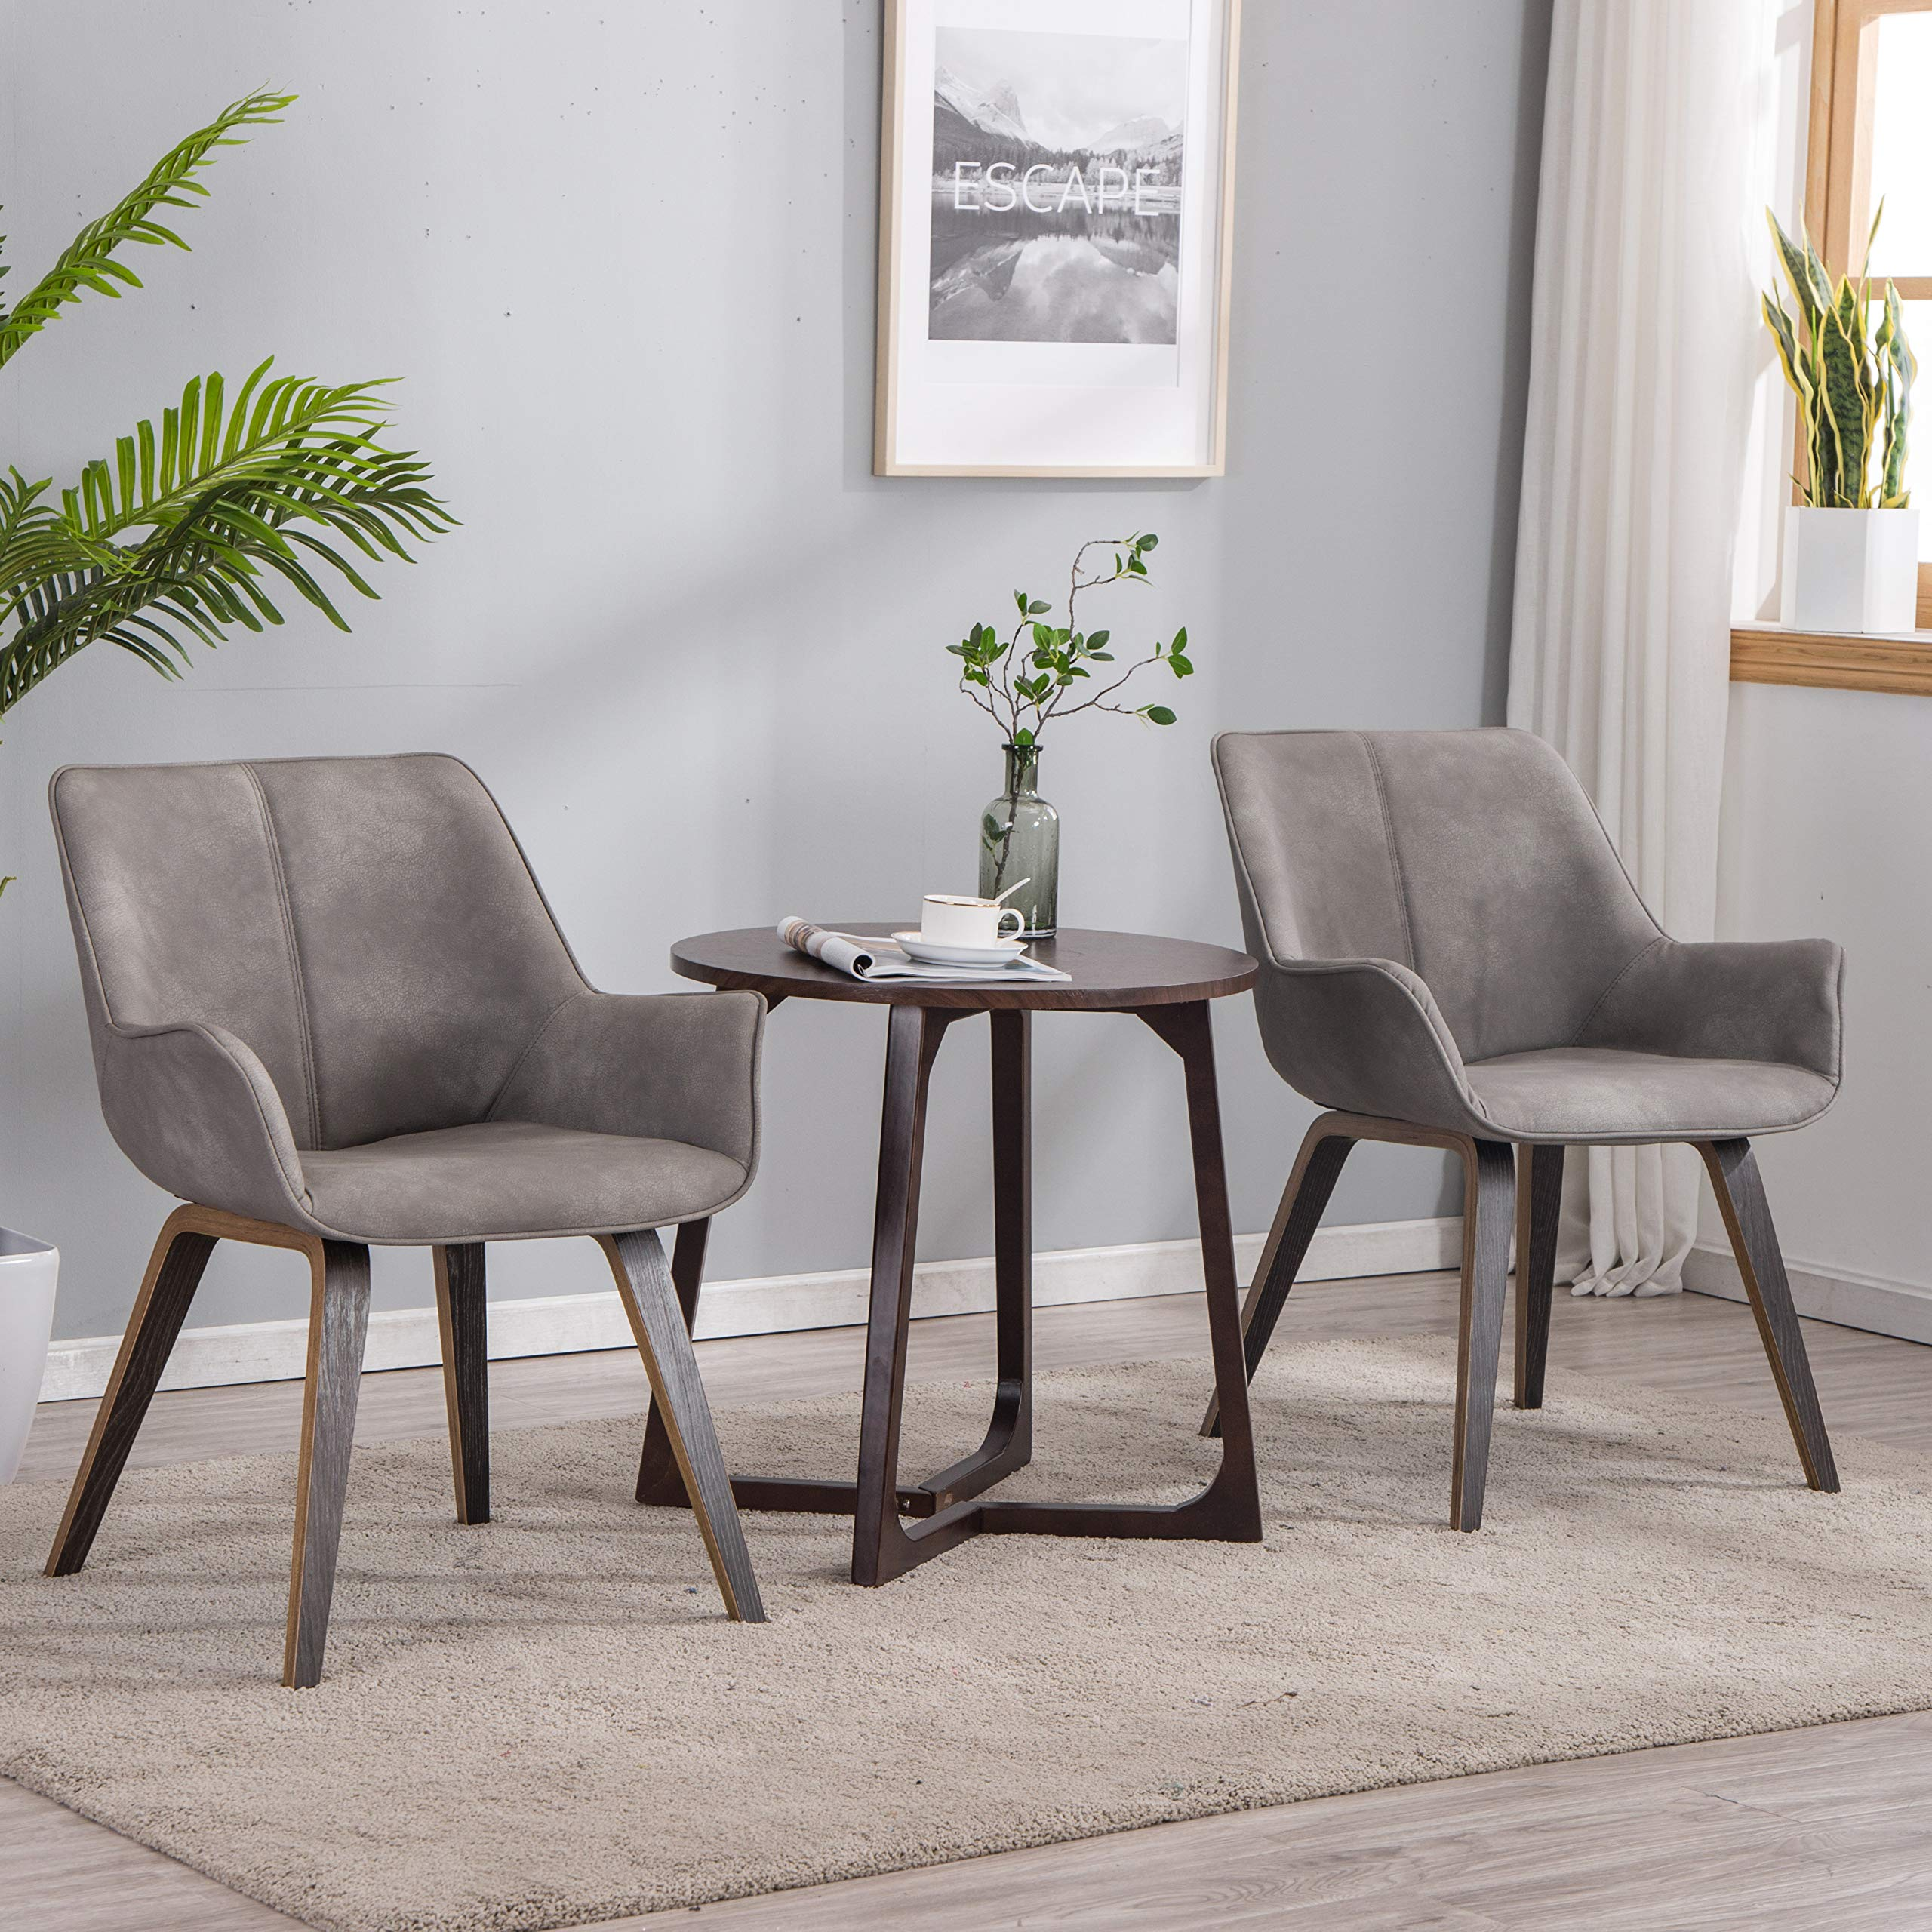 YEEFY Real Leather Dining Chairs Set of 4 Dining Chairs (Ashen)